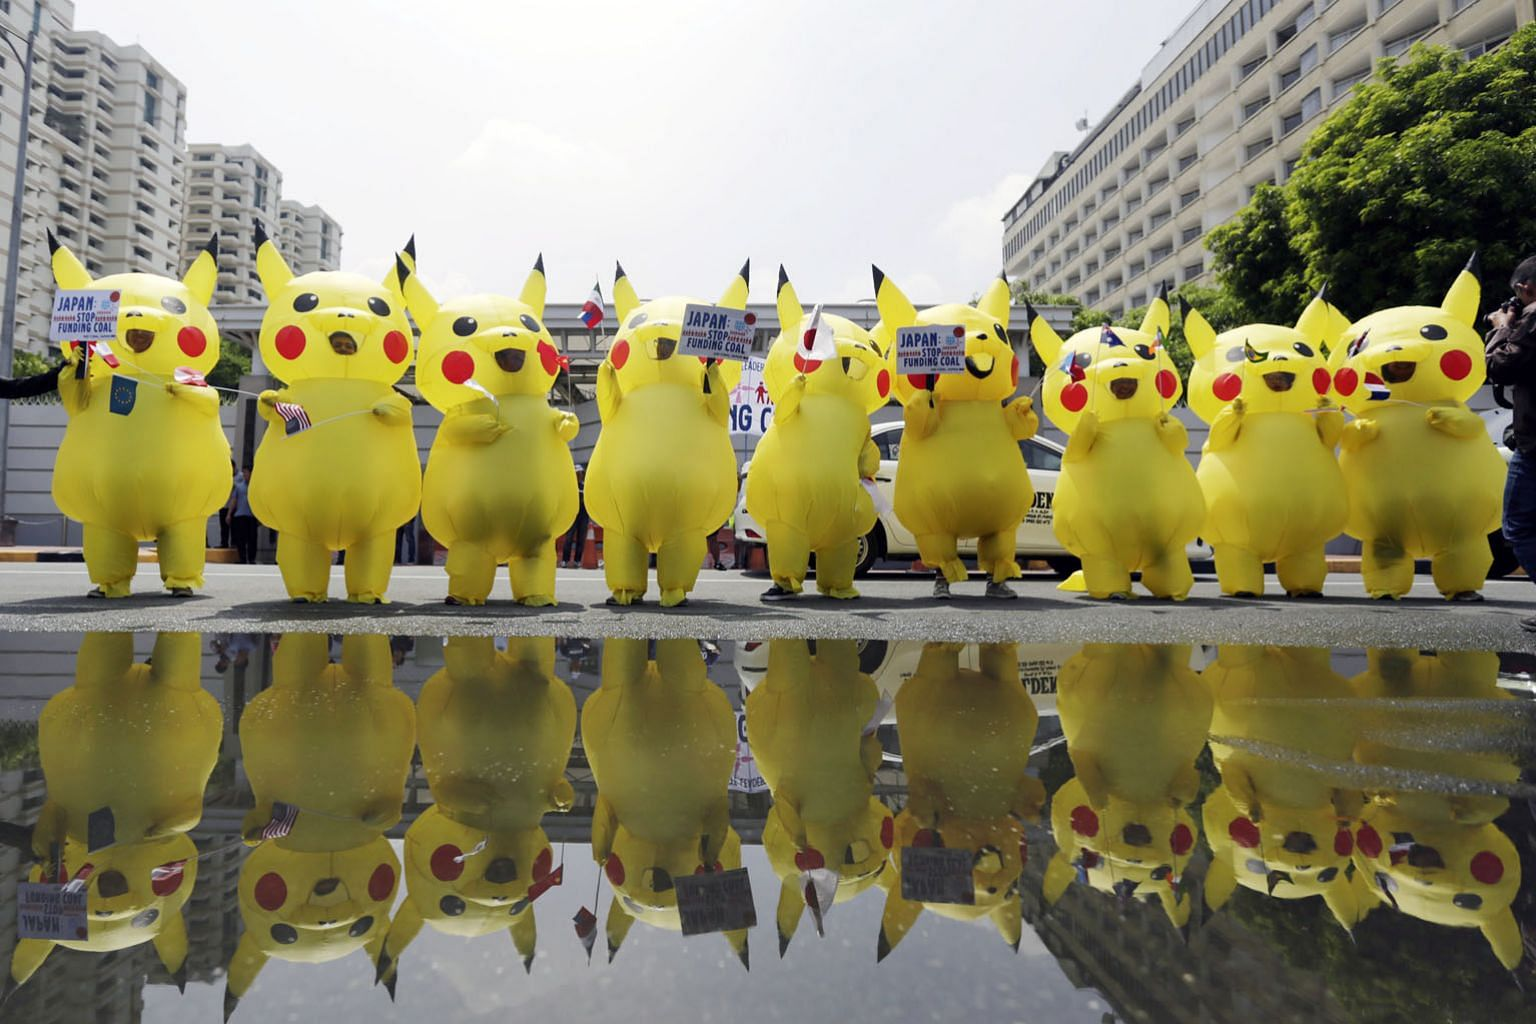 Climate activists in the Philippines from 350.org staging a demonstration dressed in Pikachu costumes in front of the Japanese embassy in Manila yesterday. 350.org was founded in 2008 by a group of university friends in the United States along with a